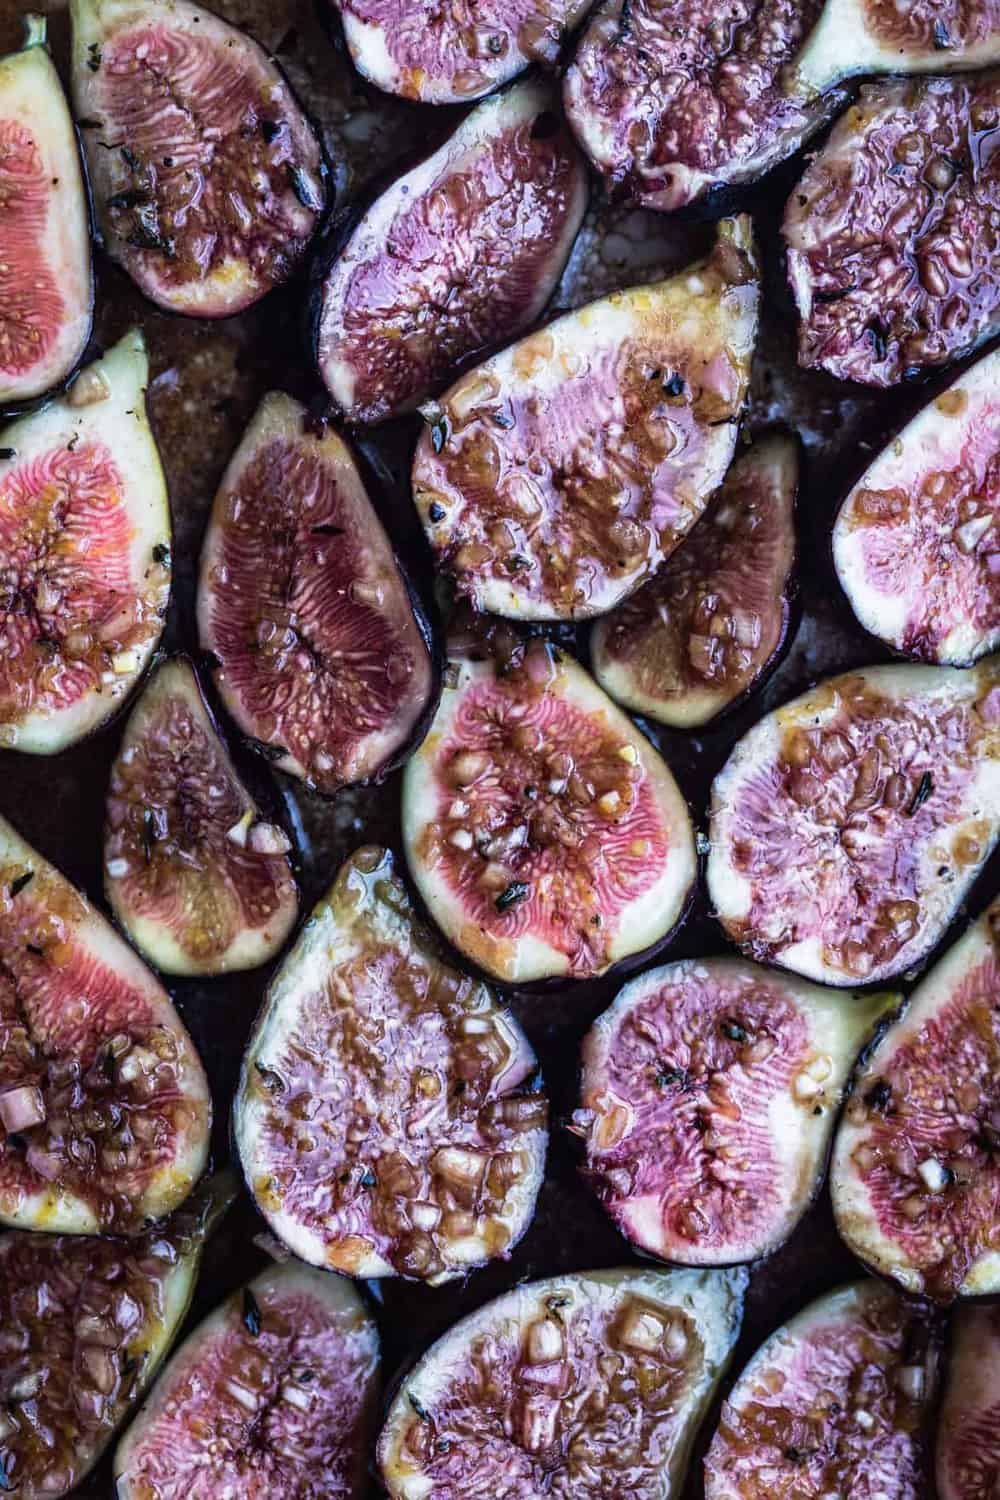 Figs cut in half, skin side down, up close, marinating in the vinaigrette, ready to go in the oven.